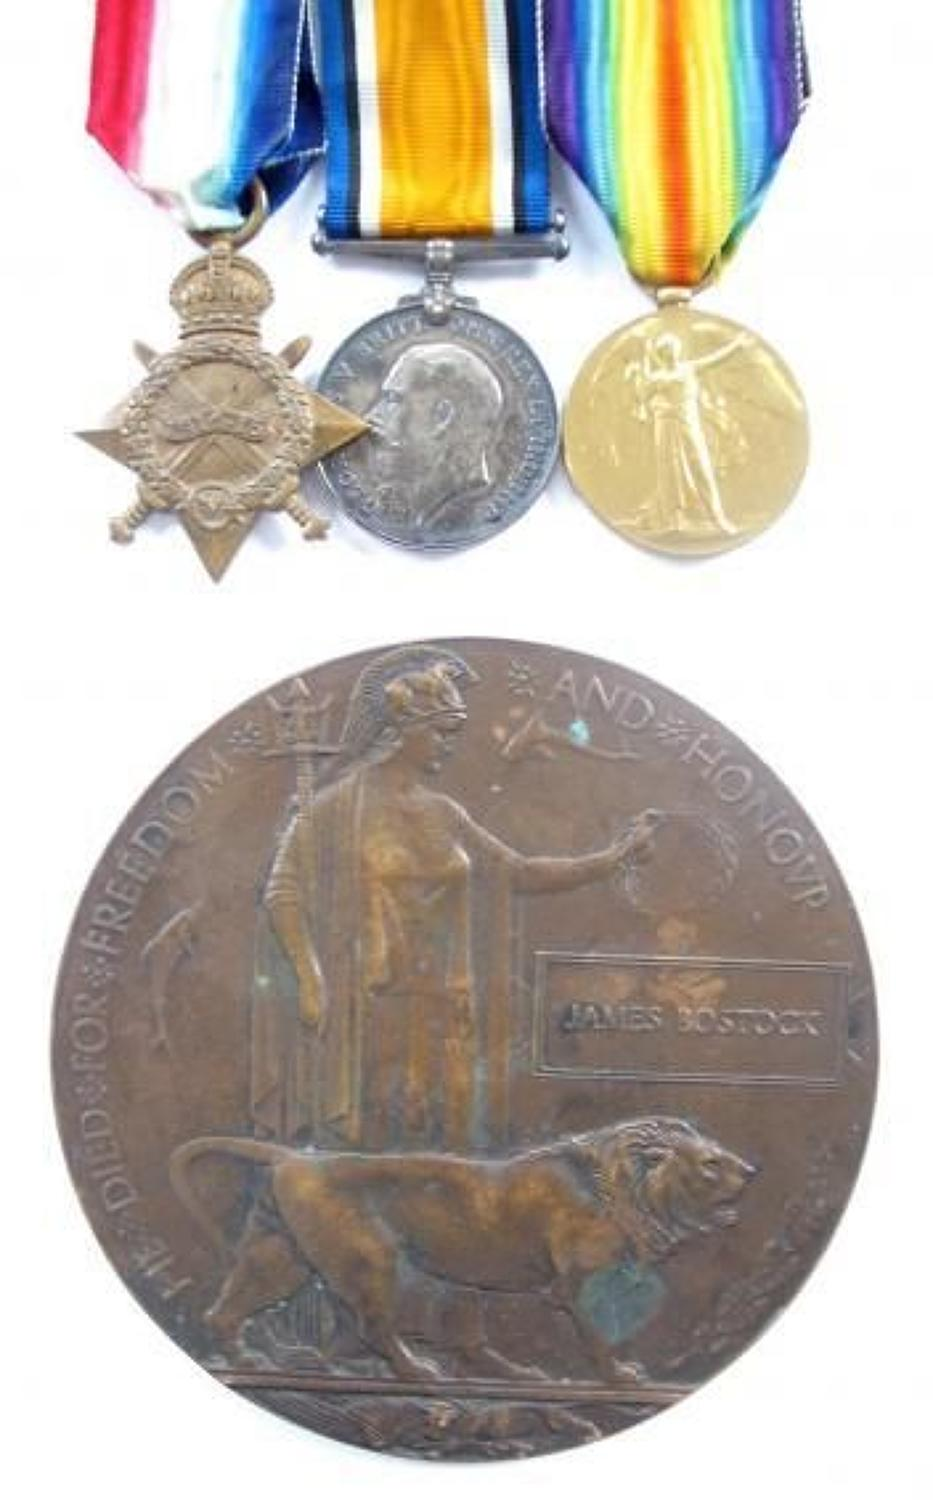 WW1 9th Bn Lancashire Fusiliers 1917 Casualty Group of Medals.